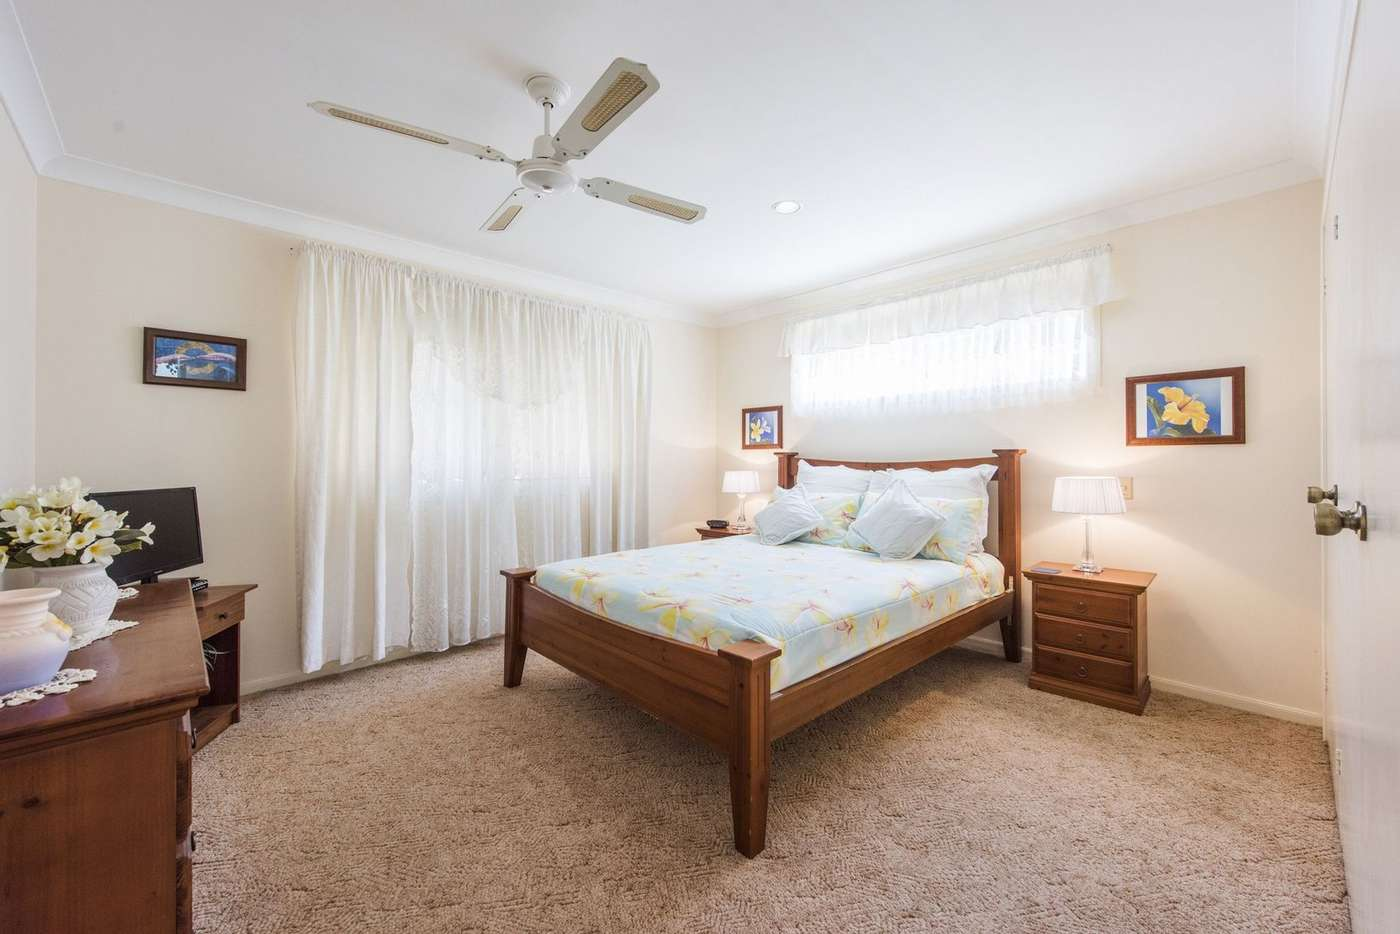 Sixth view of Homely unit listing, 5/98 Queen Street, Iluka NSW 2466